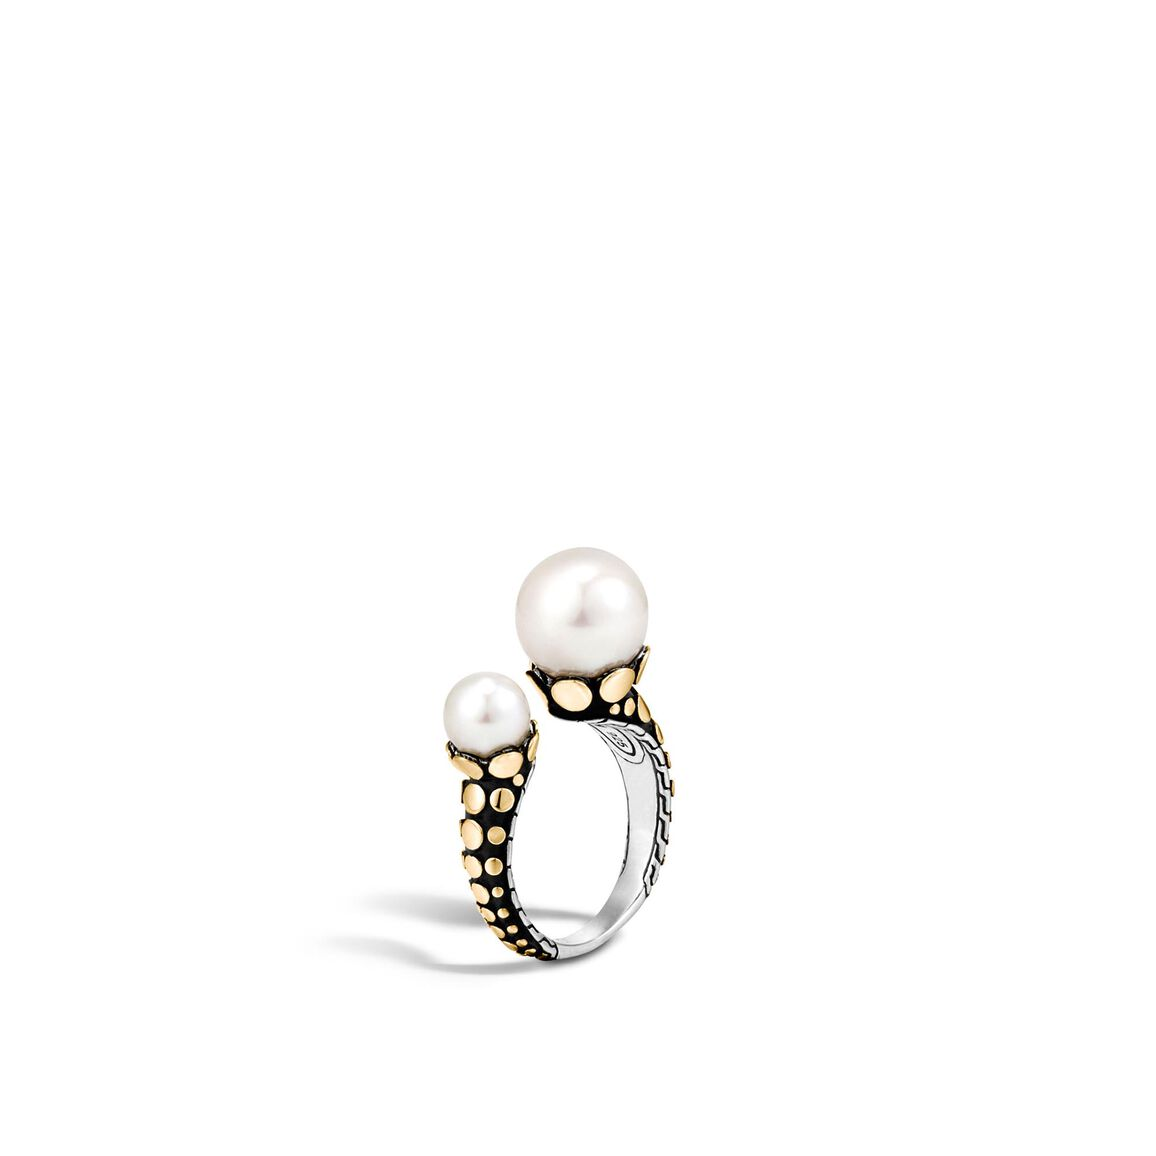 Dot Ring in Silver and 18K Gold with 11MM and 7MM Pearl